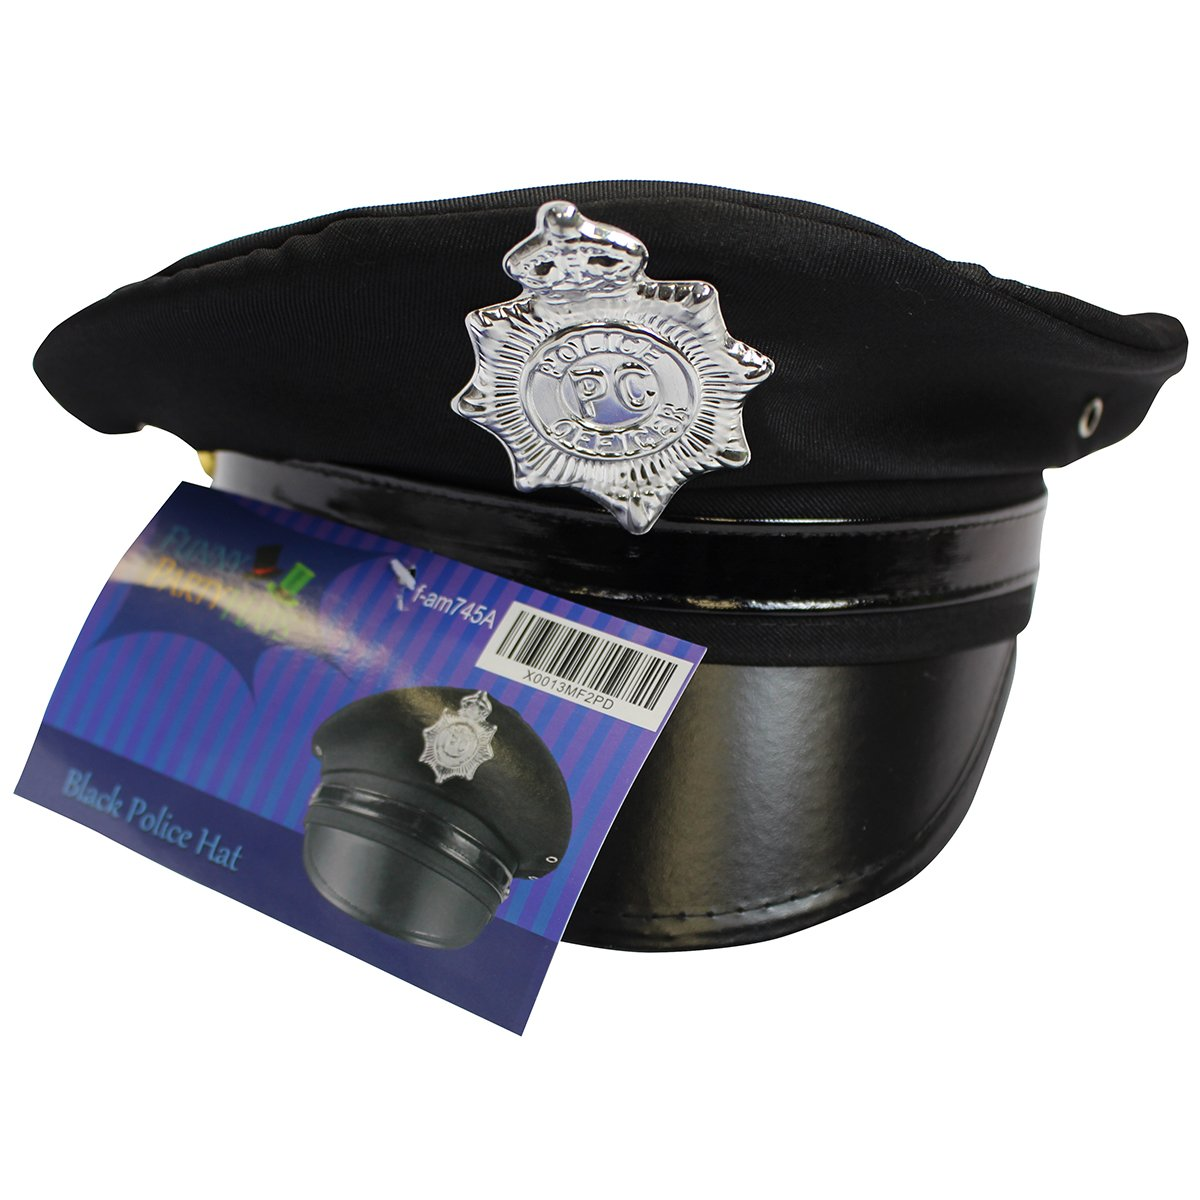 Amazon.com  Police Hat - Cop Hat - Black Captain Hat - Officer Hat - Police  Officer Costume Accessories by Funny Party Hats  Clothing f83b3714896